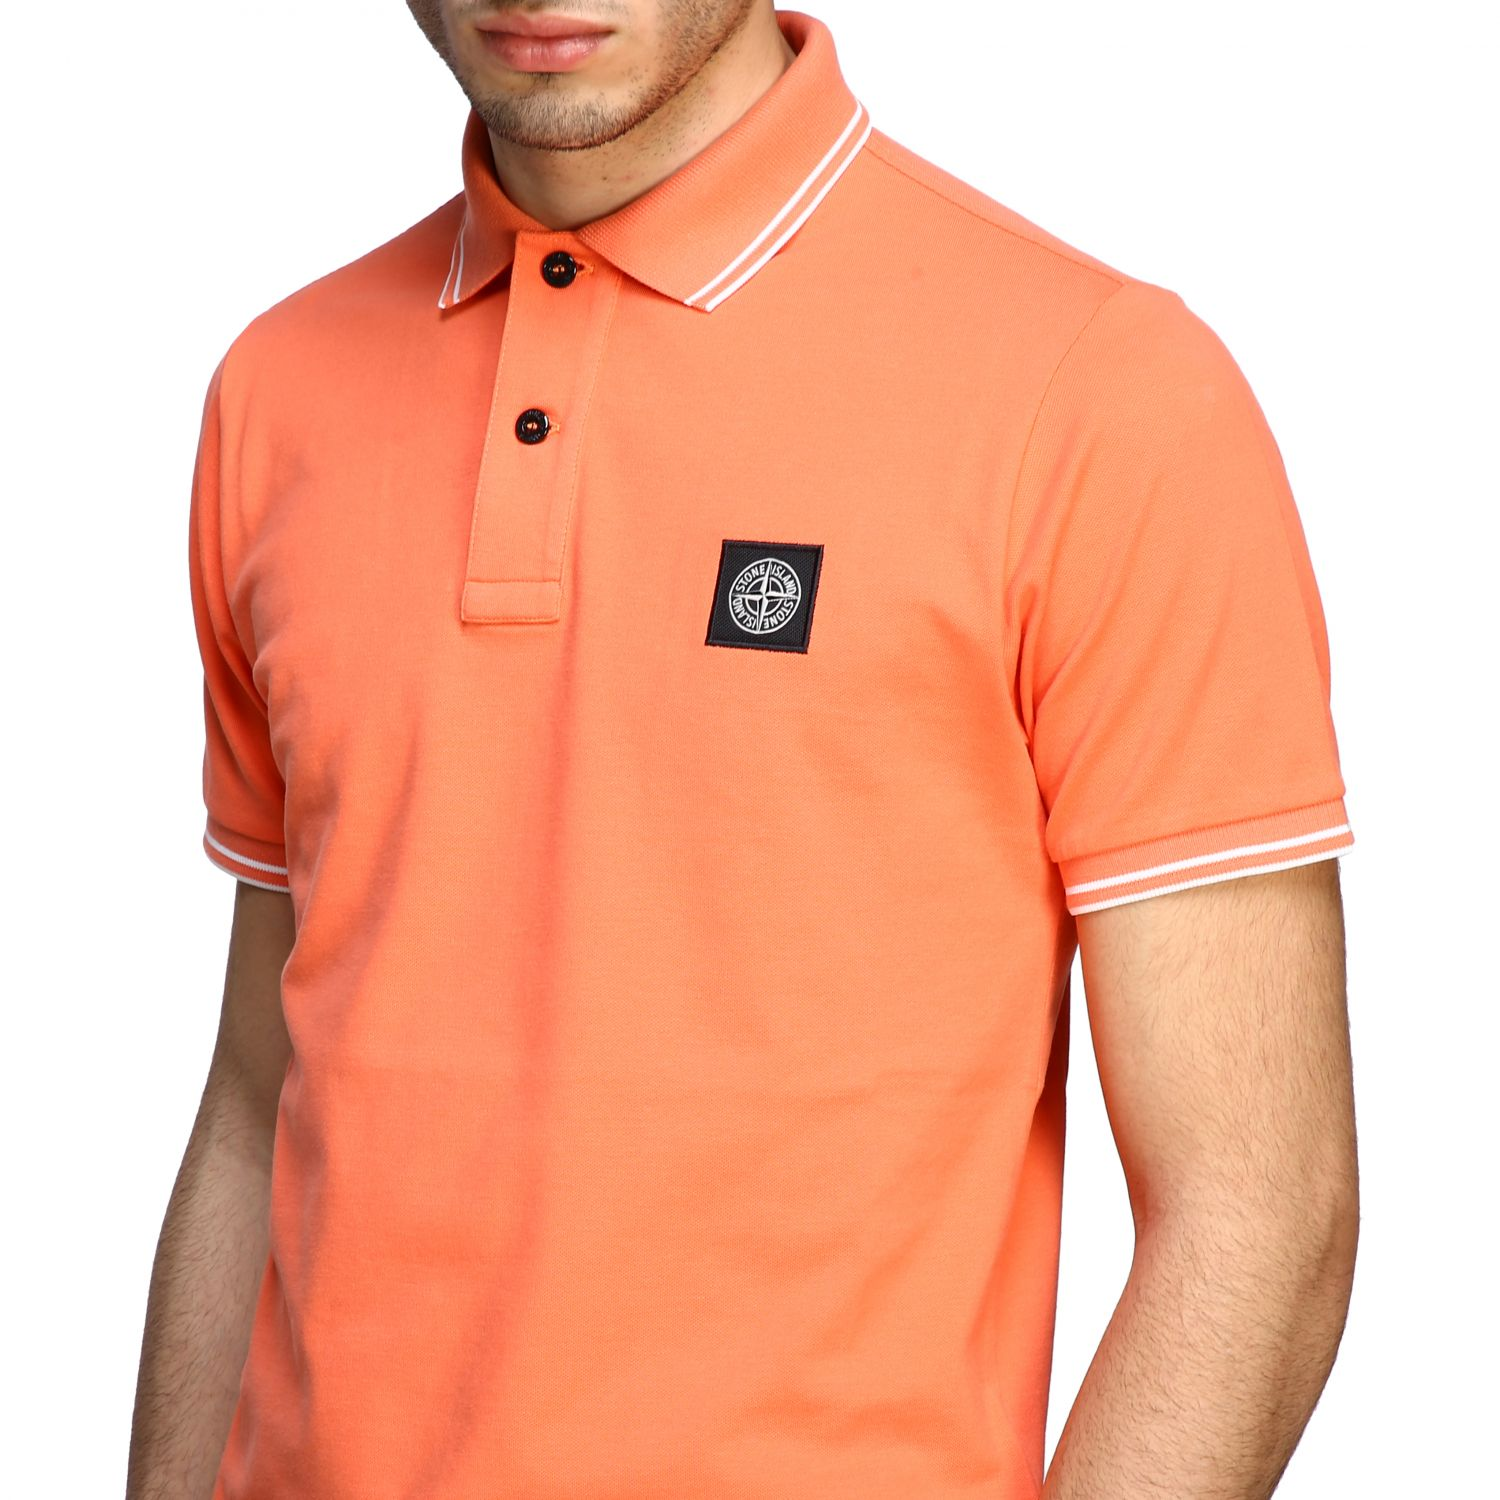 T-shirt men Stone Island orange 5